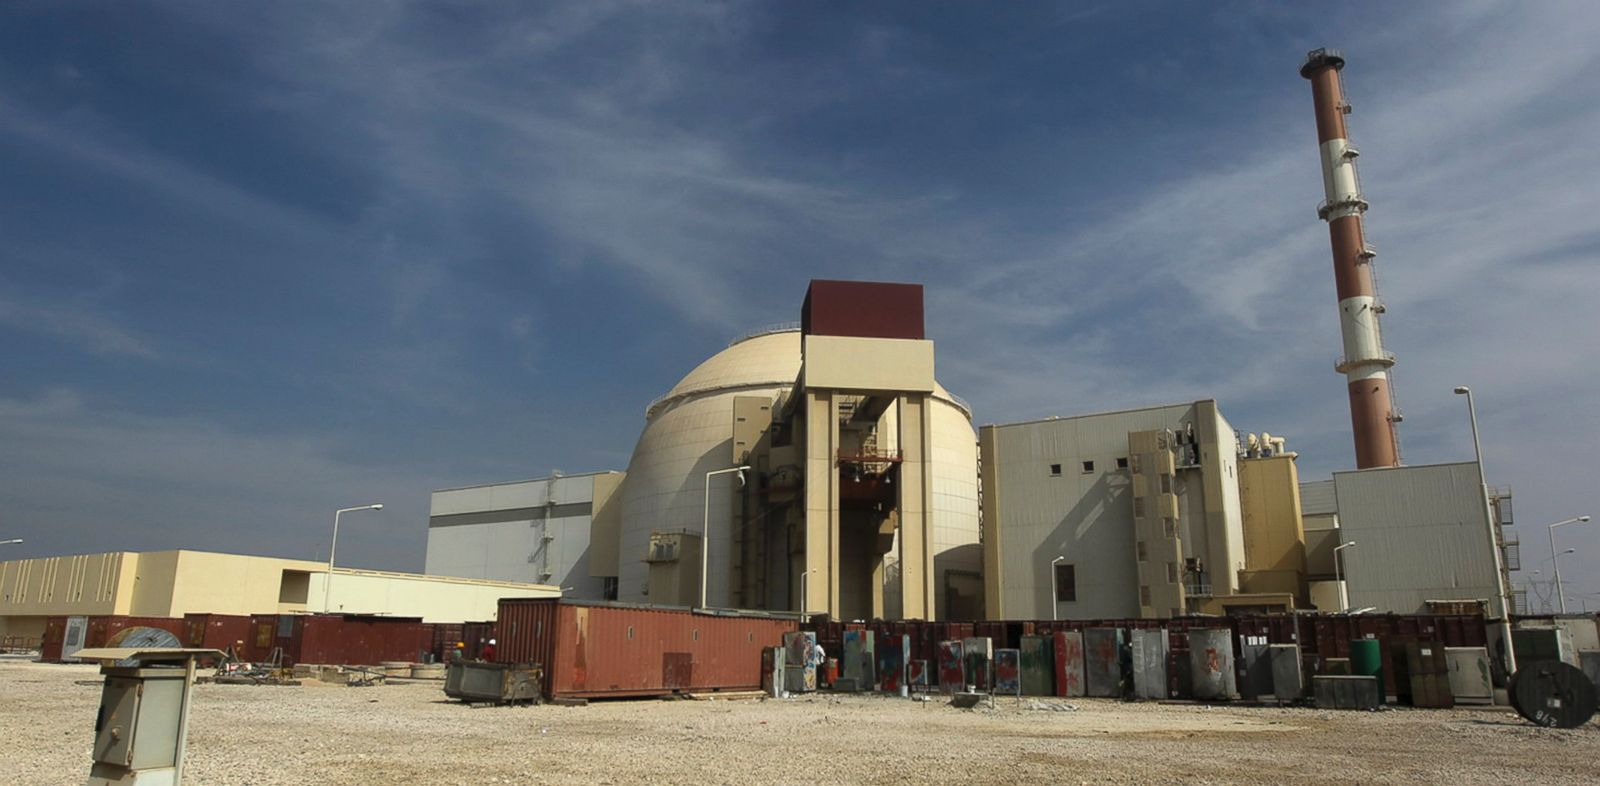 PHOTO: The reactor building of the Bushehr nuclear power plant just outside the southern city of Bushehr, Iran, Oct. 26, 2010.